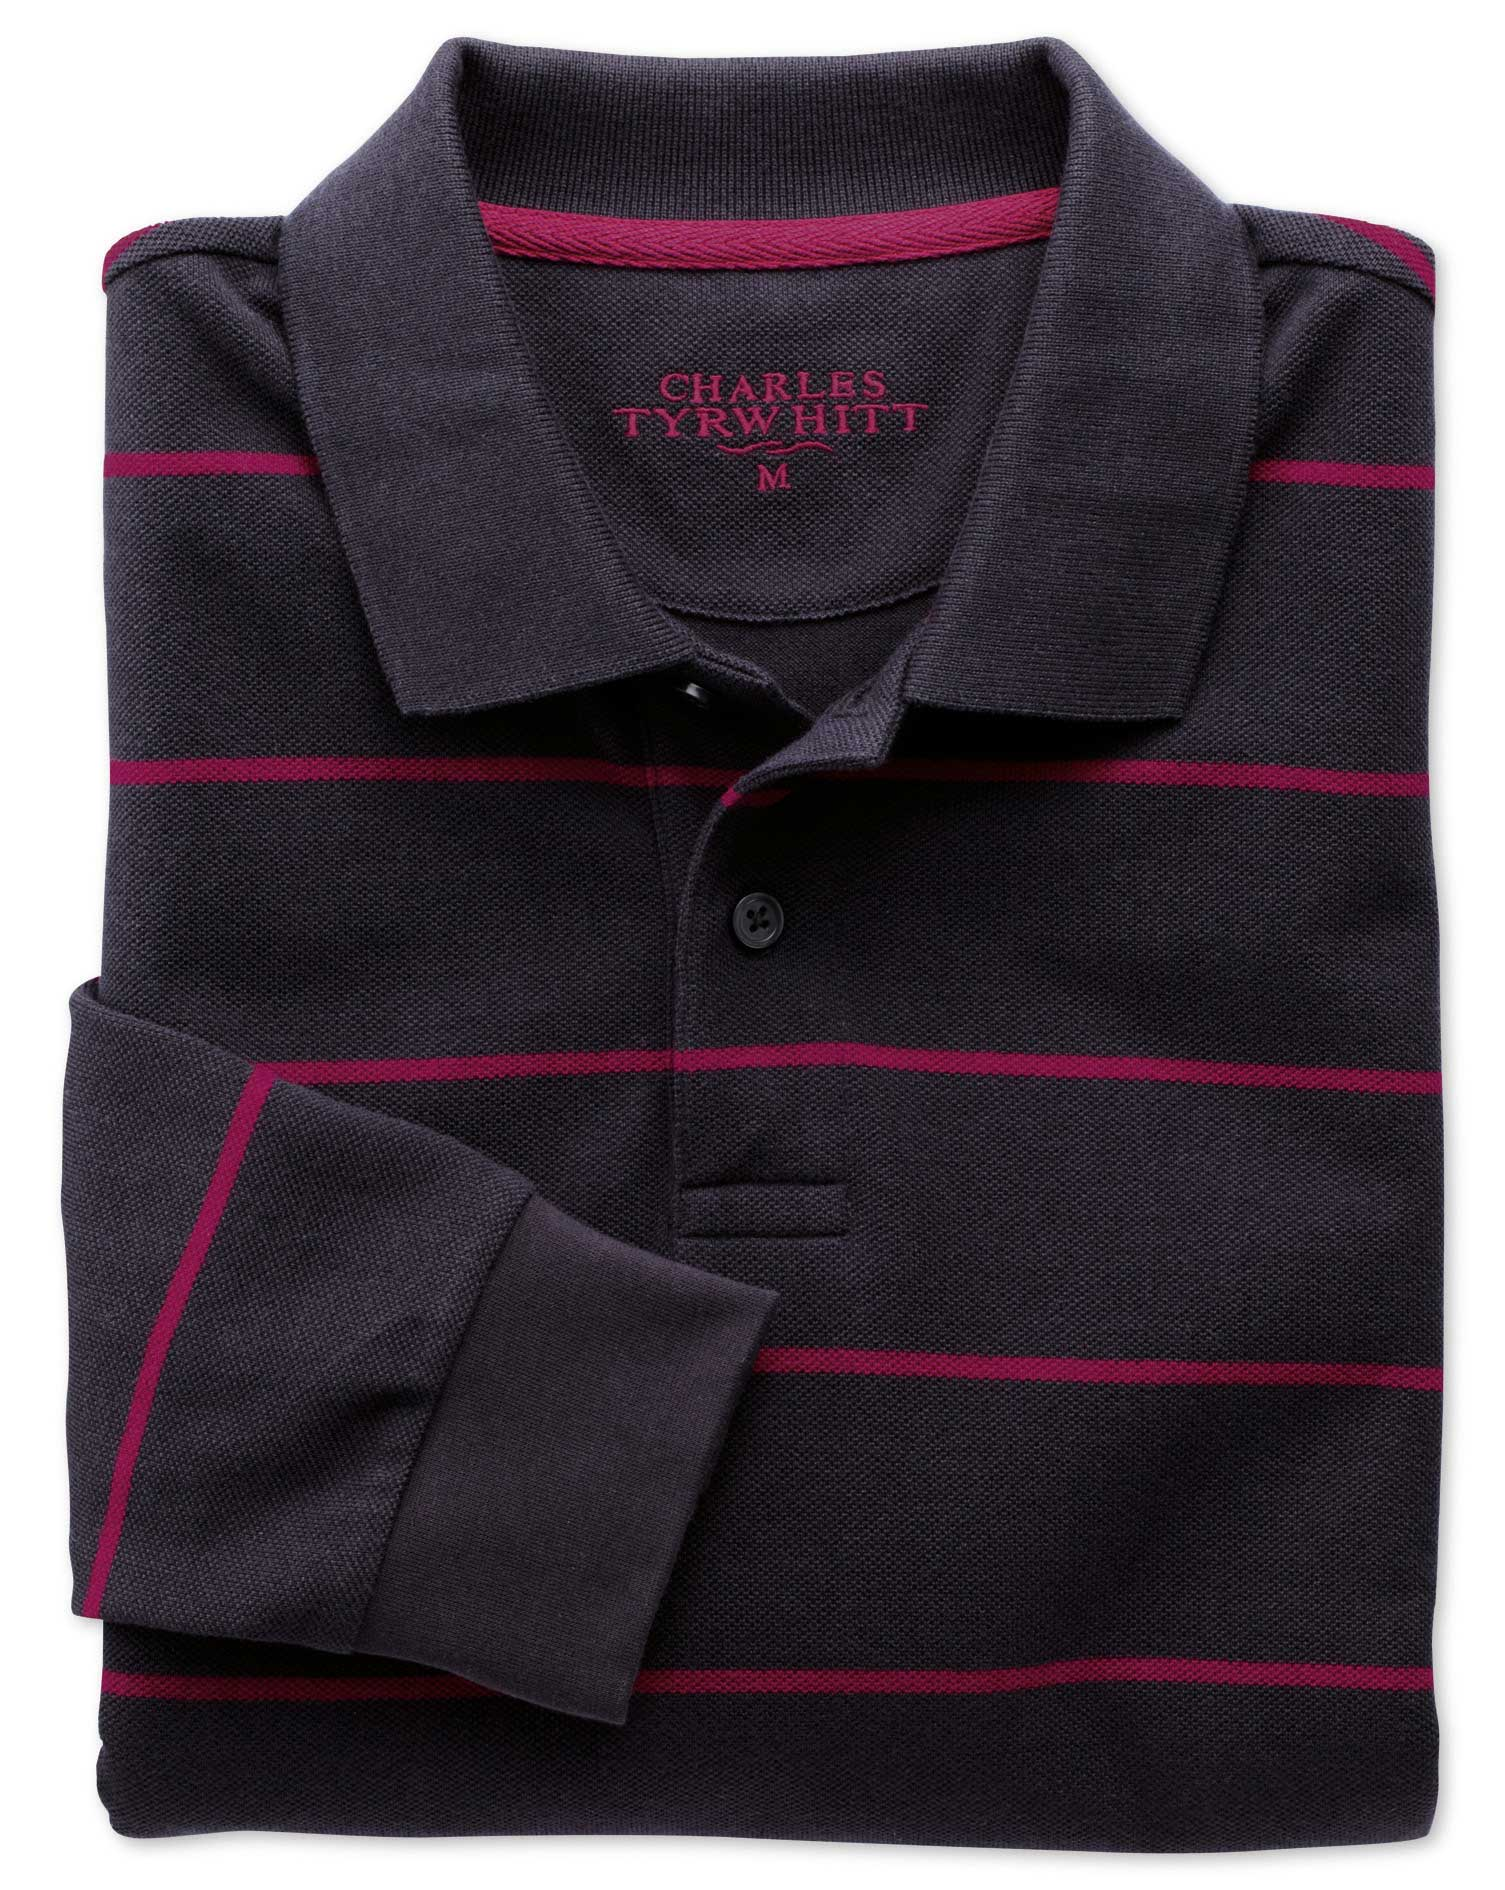 Navy and Berry Stripe Pique Long Sleeve Cotton Polo Size XXL by Charles Tyrwhitt